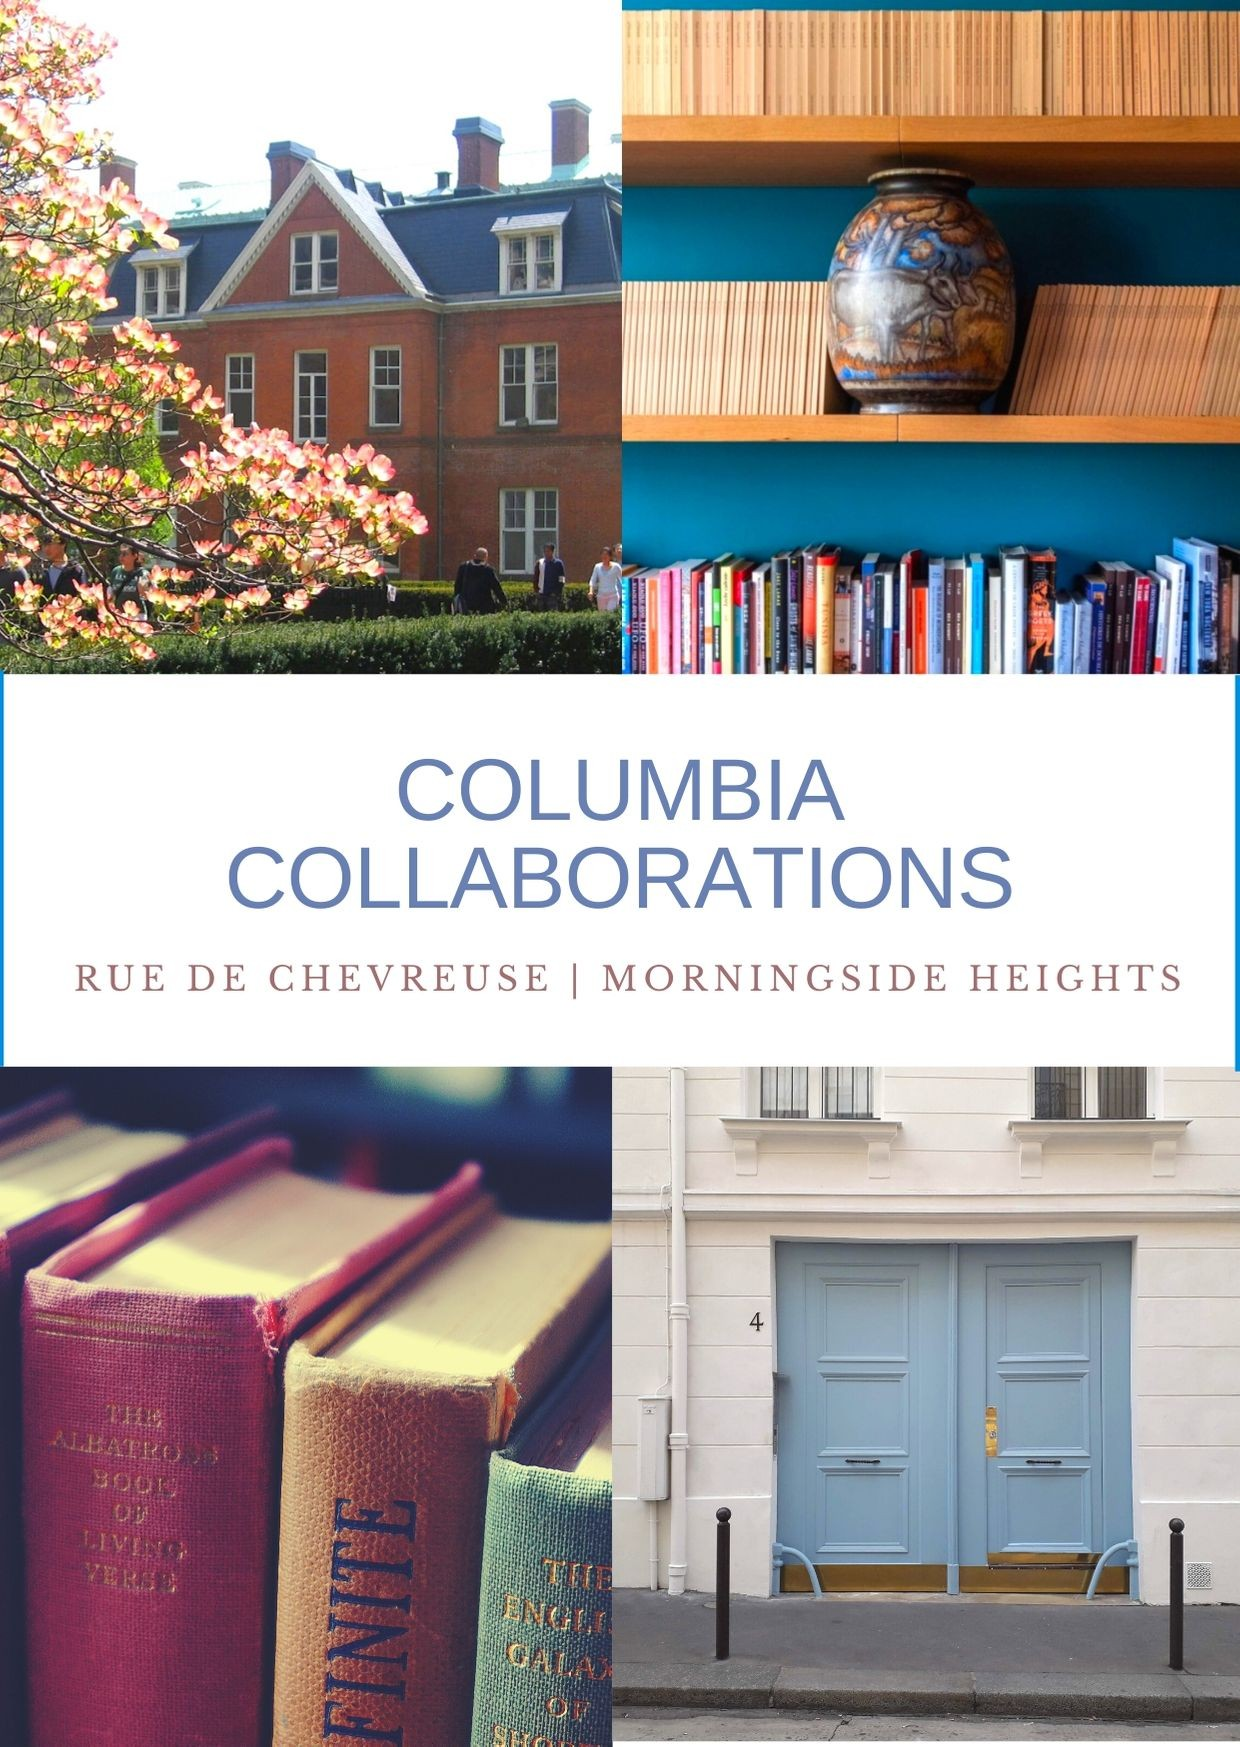 Columbia Collaborations